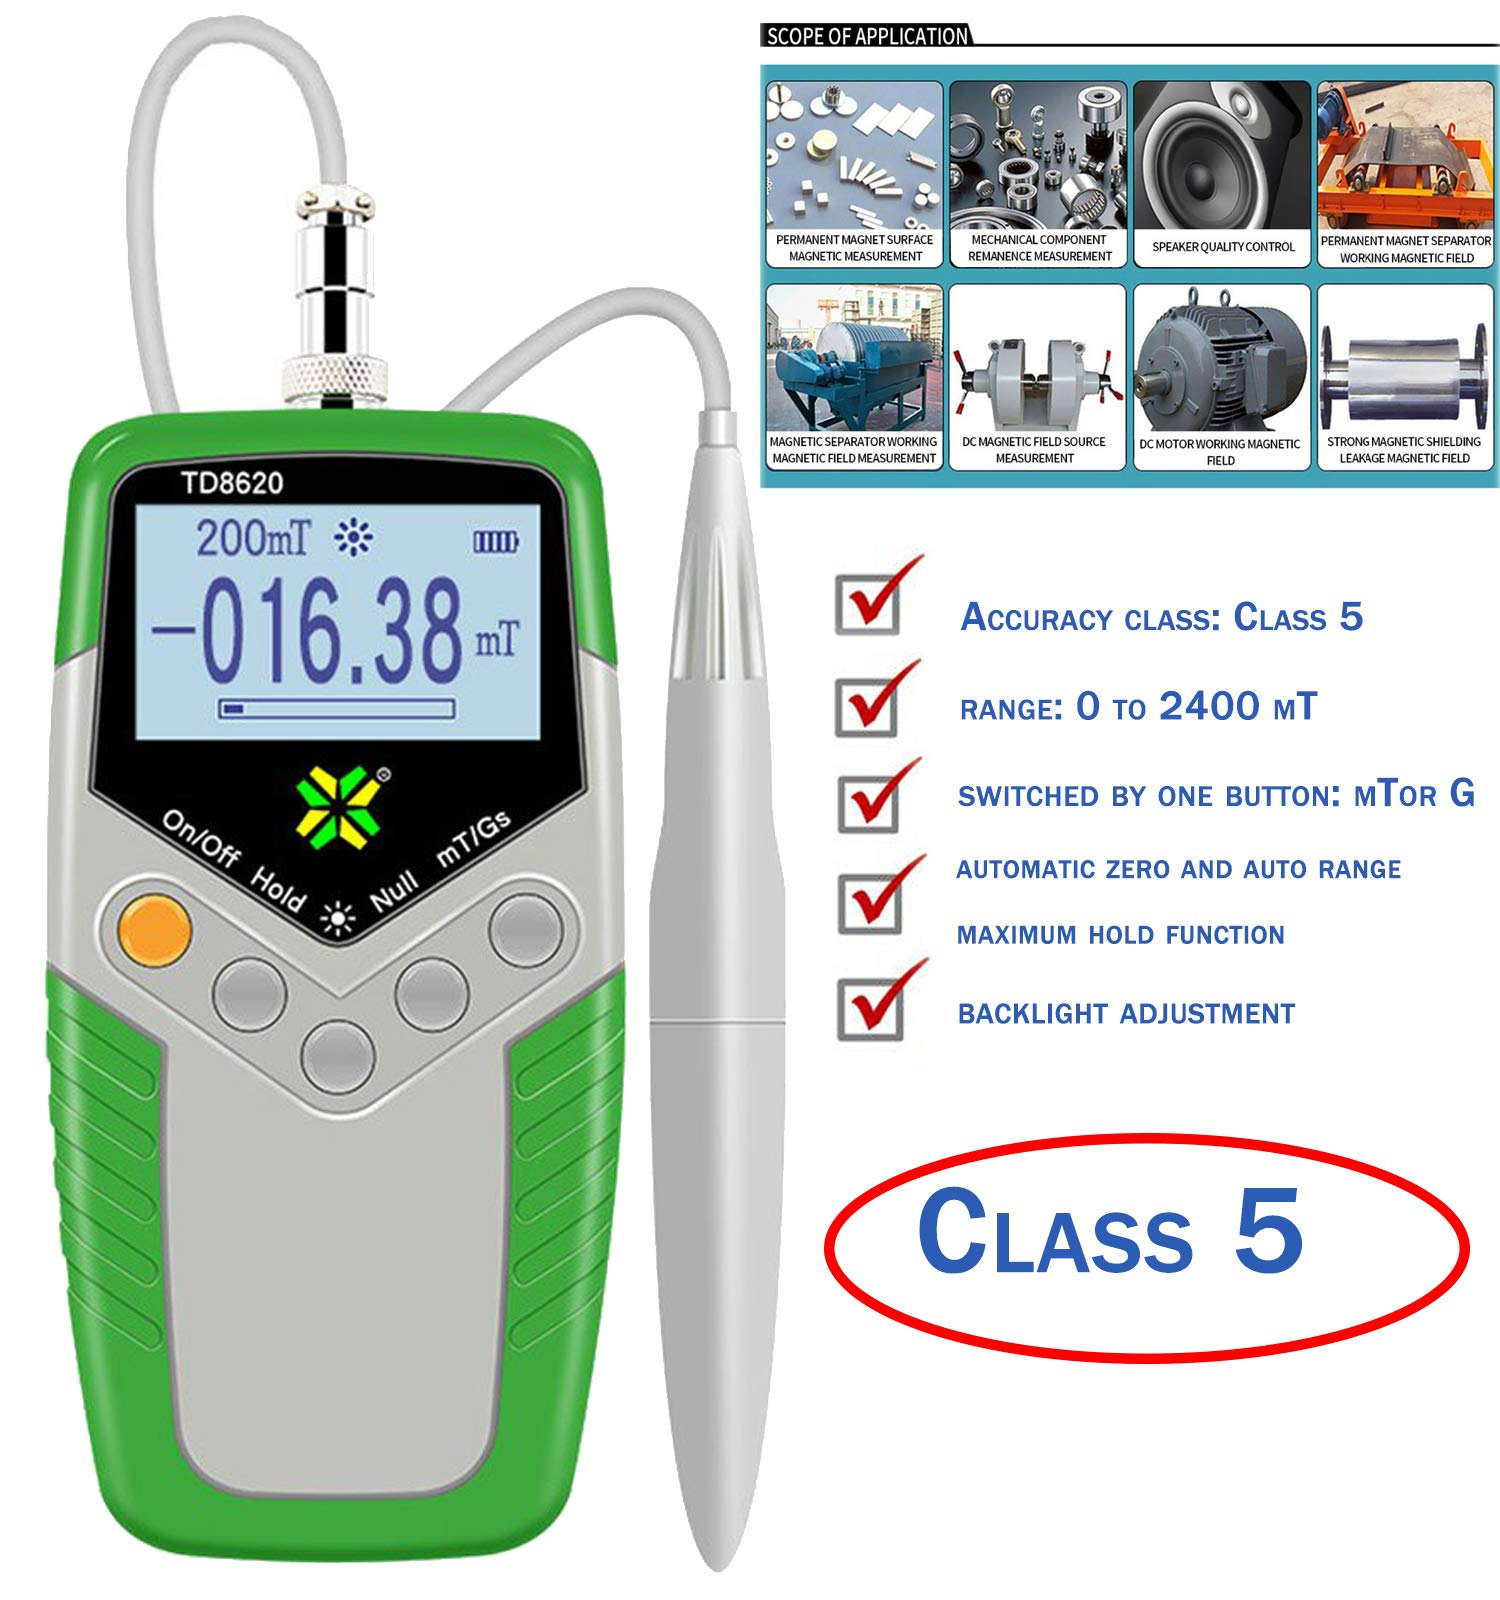 Handheld Digital Tesla Meter Permanent Magnet Gauss meter High Precision Gaussmeter Fluxmeter Surface Magnetic Field Tester with 5% Accuracy Probe 0 to 2400mT